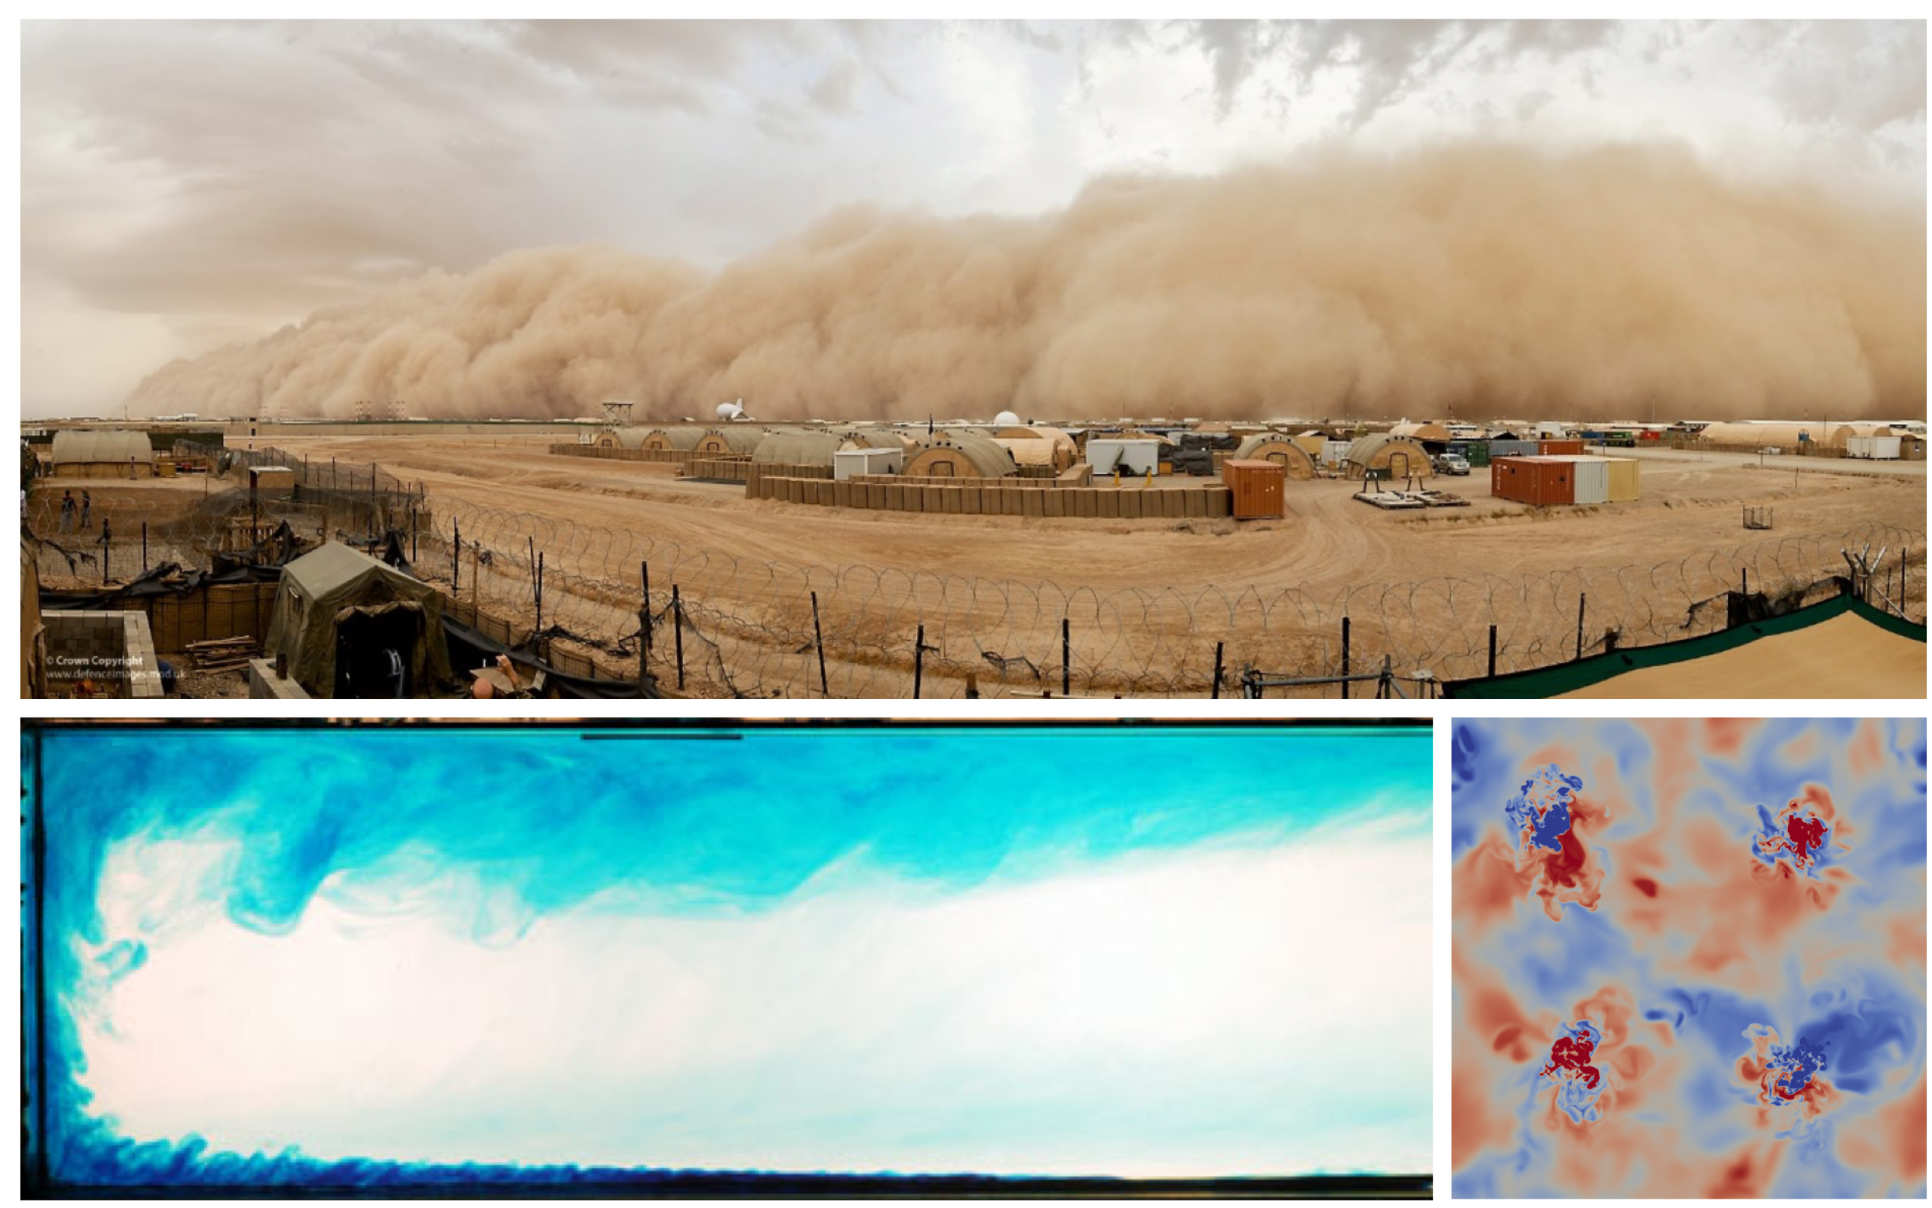 [Top] Dust storm in Afghanistan, [Bottom-left] Horizontal convection produced by the differential heating of a horizontal boundary condition, [Bottom-right] A horizontal slice though a confined space heated and cooled by isolated sources of buoyancy.